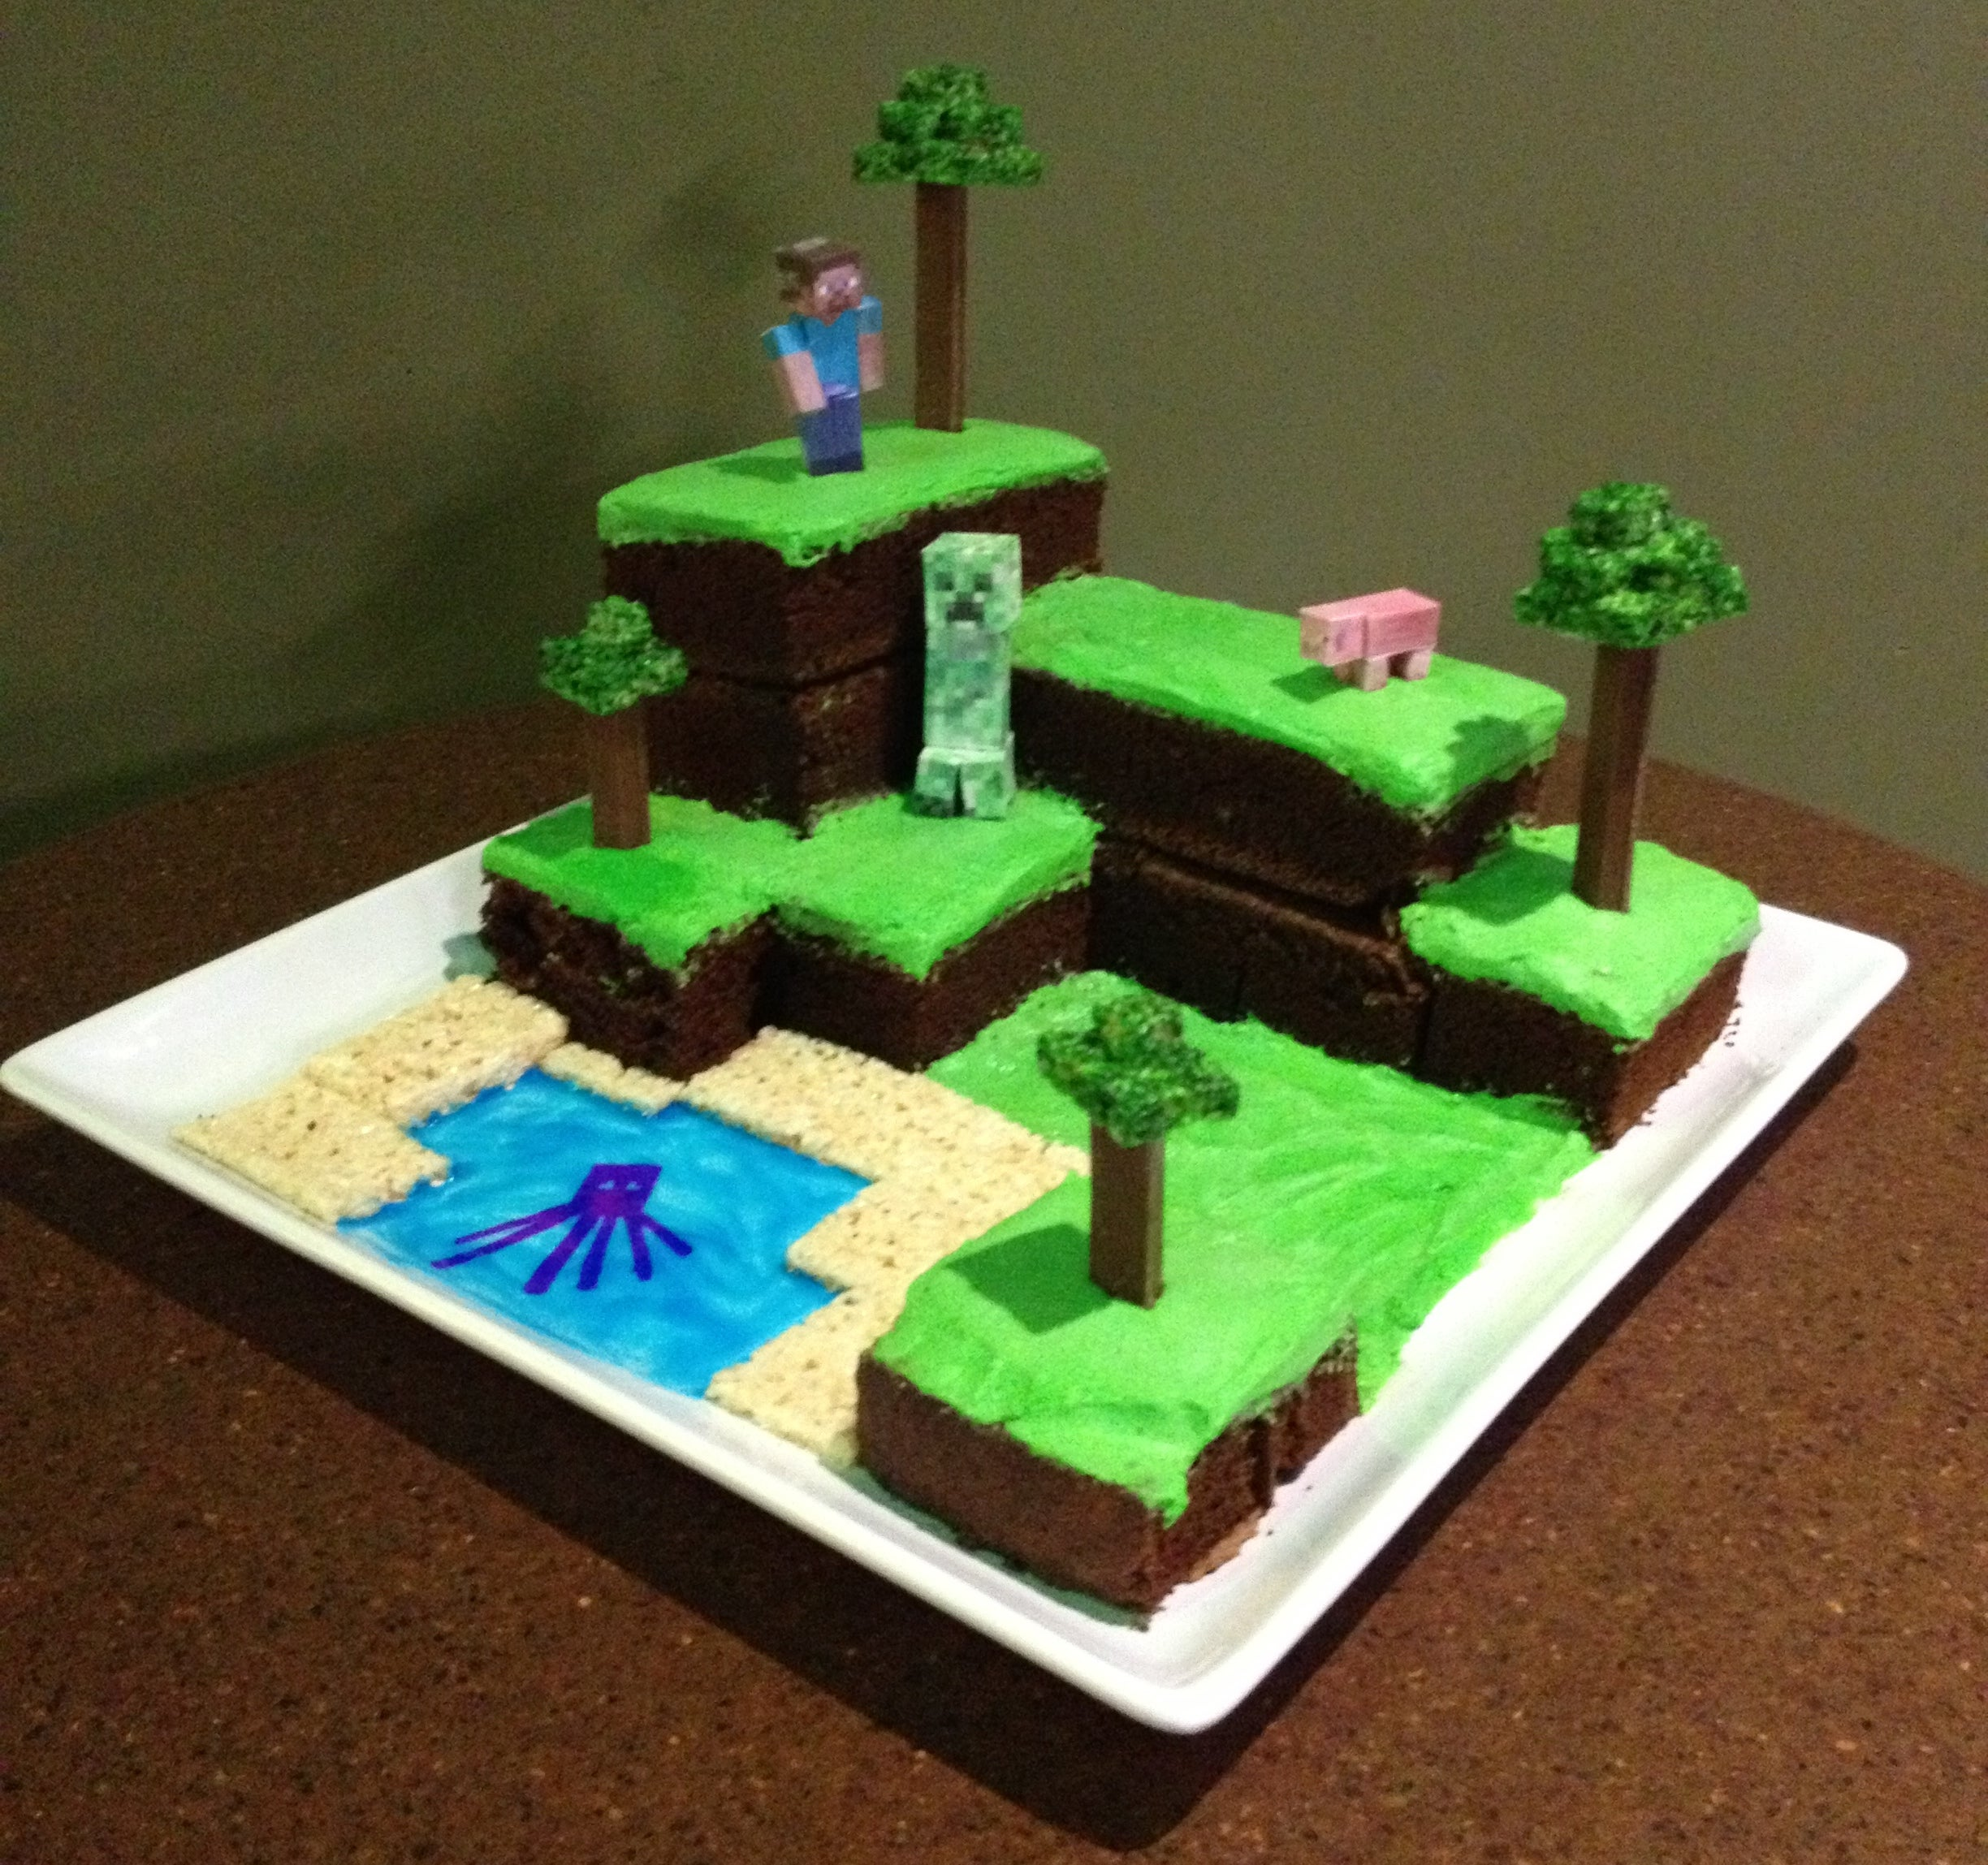 Phenomenal Minecraft World Cake With Pictures Instructables Personalised Birthday Cards Sponlily Jamesorg